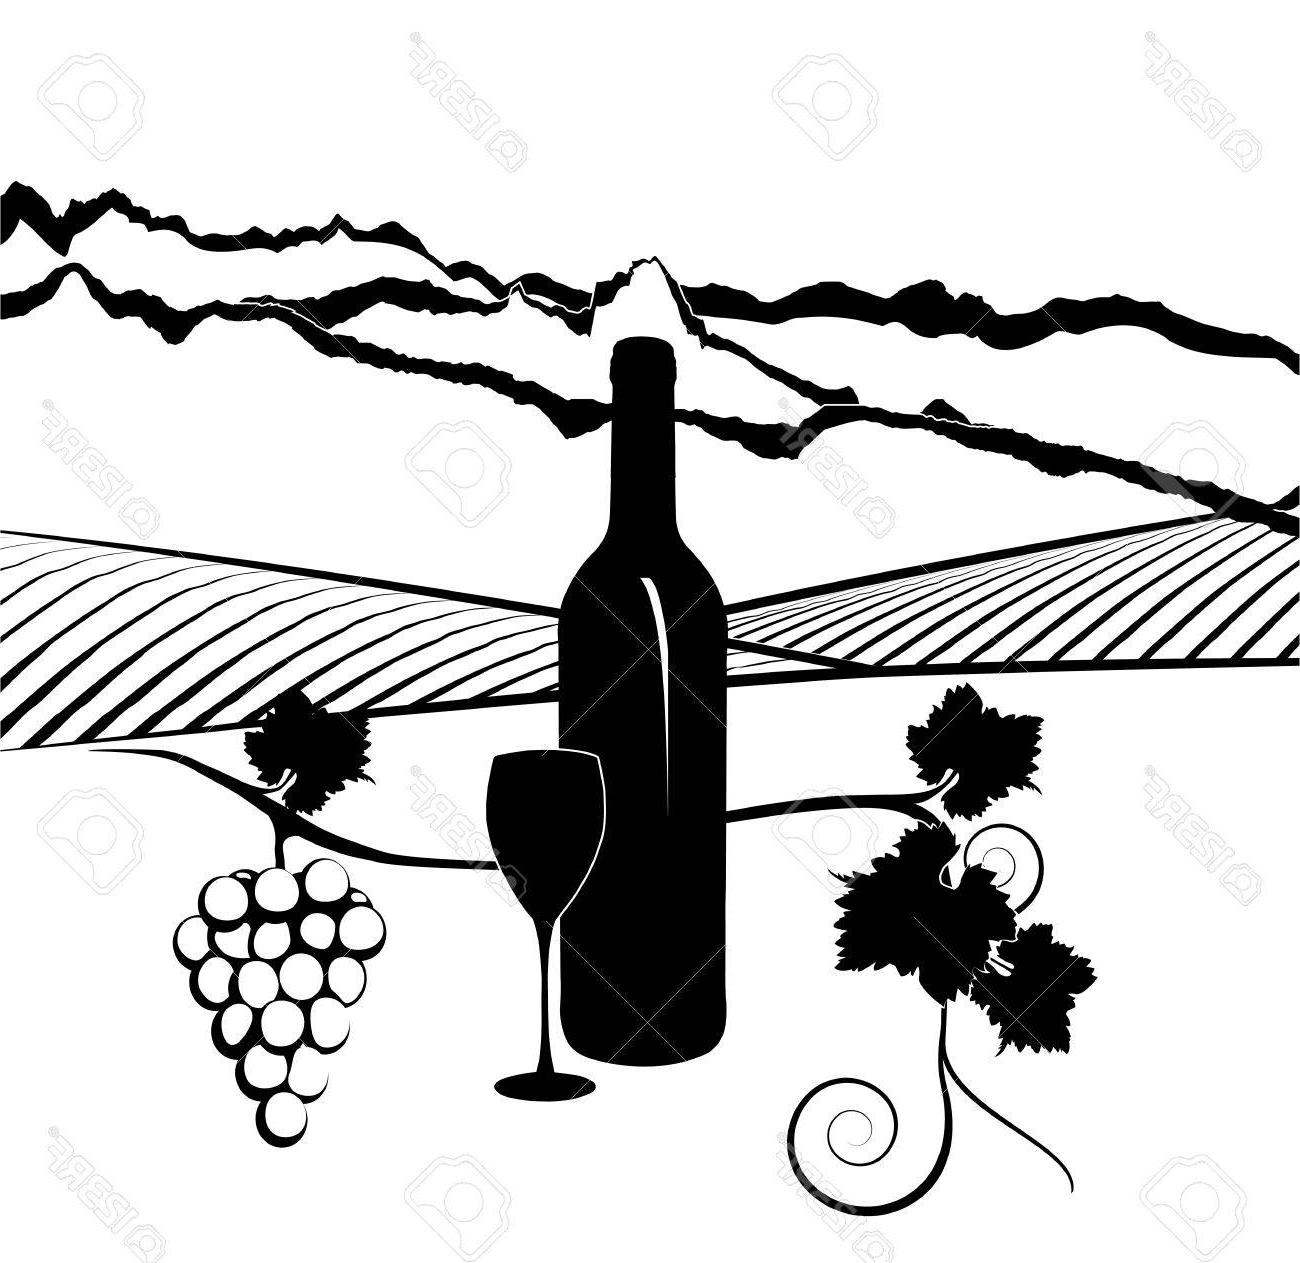 1300x1263 Best 15 Silhouette Of Bottle Wine With Glass And Vineyard